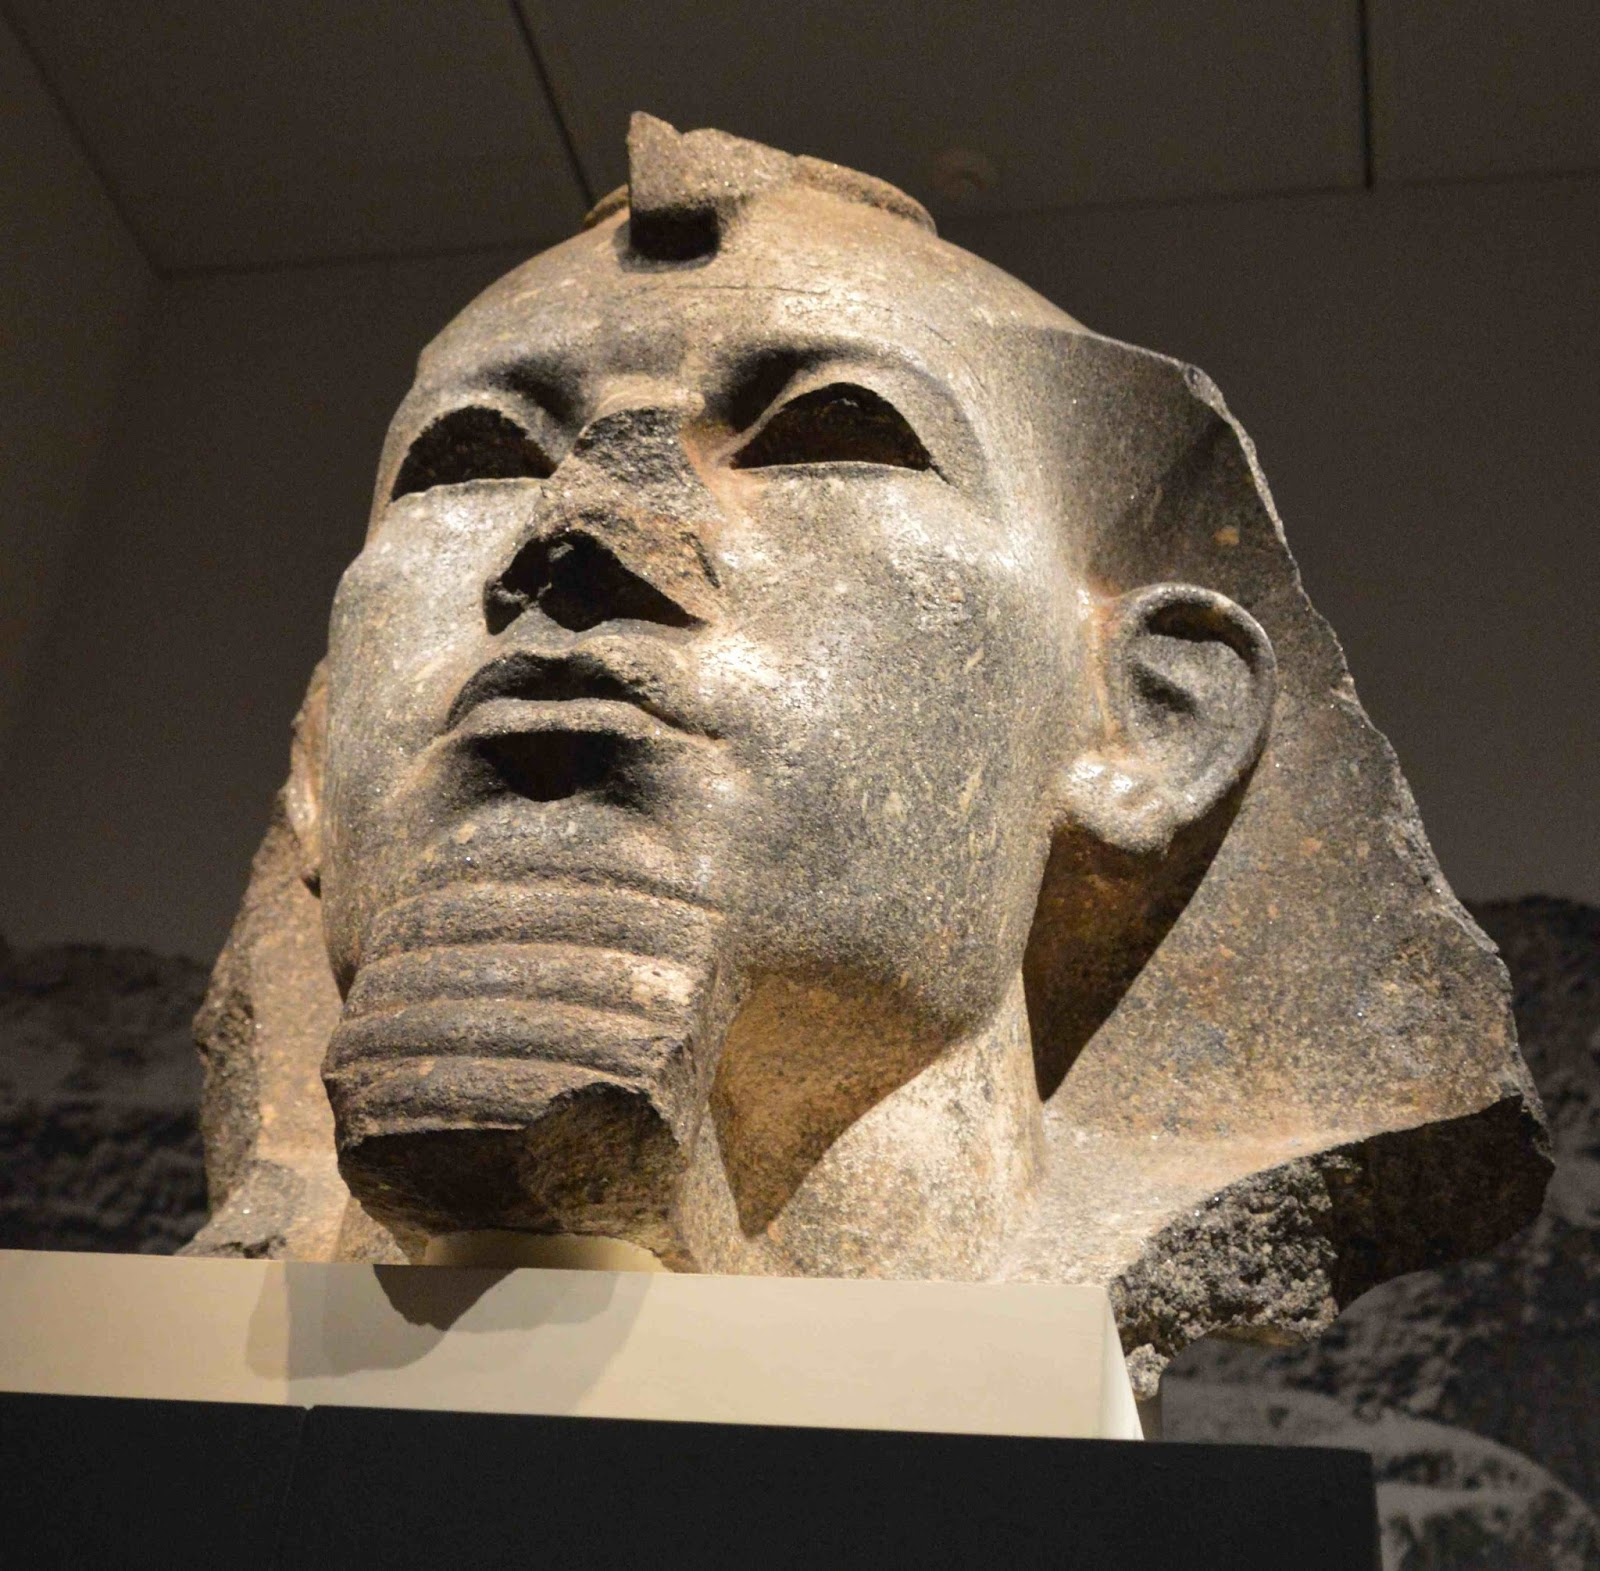 a look at the kings and pharaohs of the ancient egypt Ancient egypt was once ruled by a real life giant, according to scientists who discovered a huge pharaoh the bones were discovered in an elite tomb which was the custom for rulers at the time, suggesting that the ancient king was not given any astonishing images as ufos appear over pyramids.